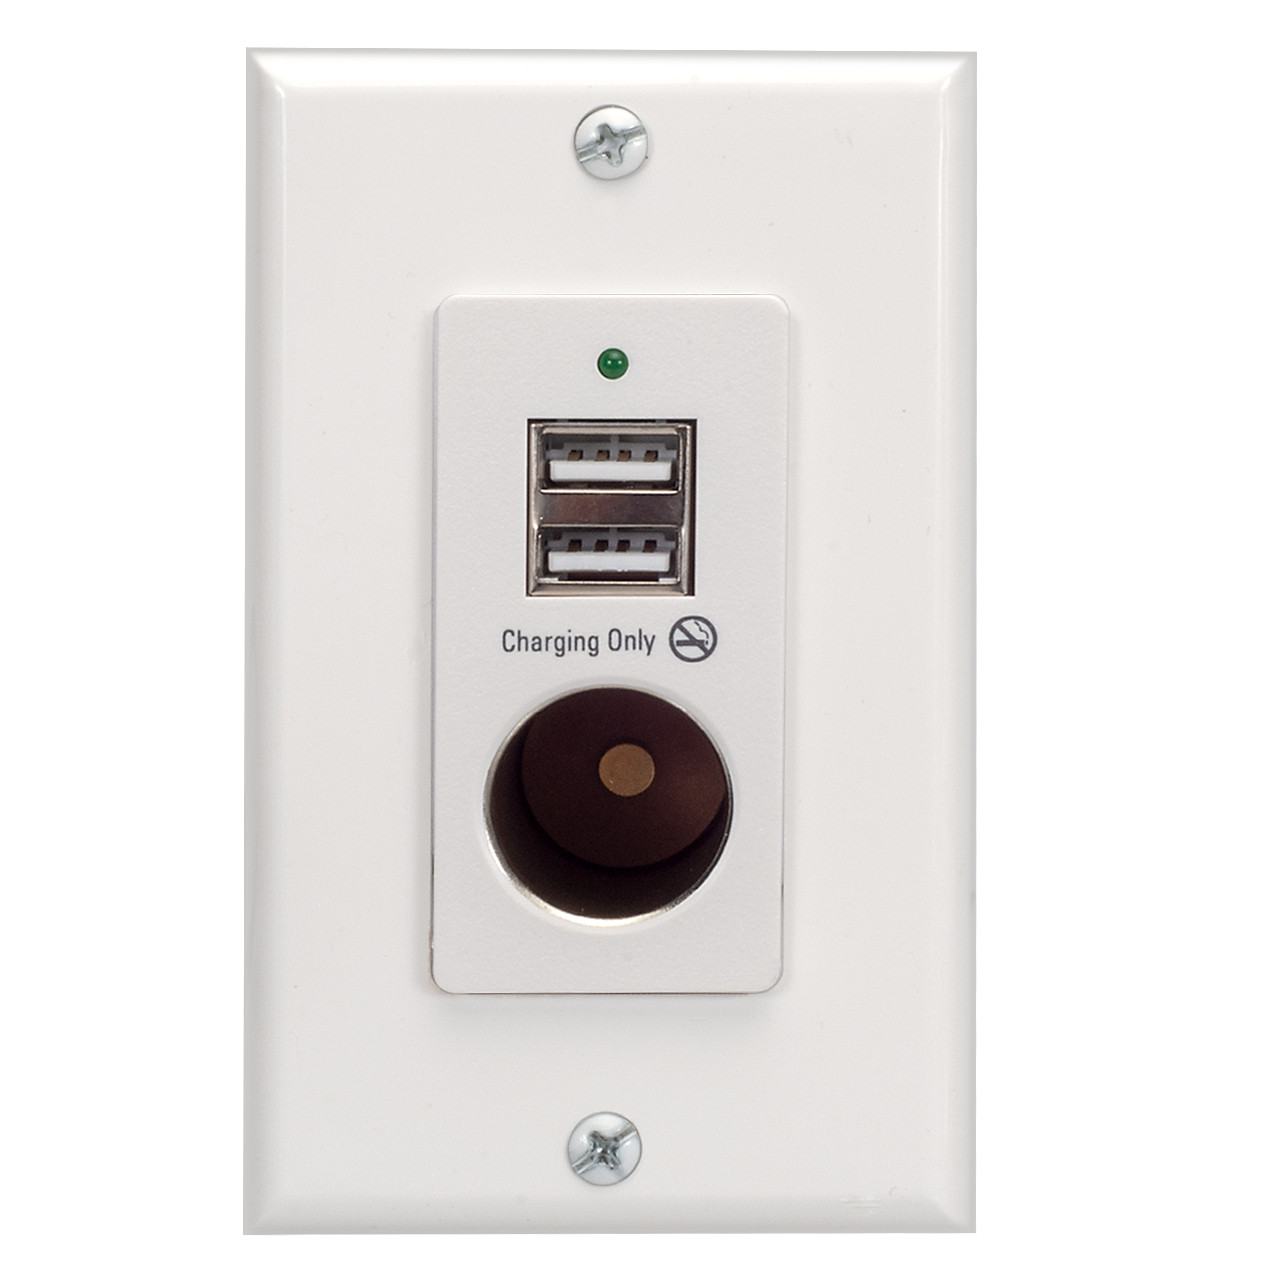 magnadyne wc 12v w wall mount usb charger with 2 ports and 12v [ 1280 x 1280 Pixel ]